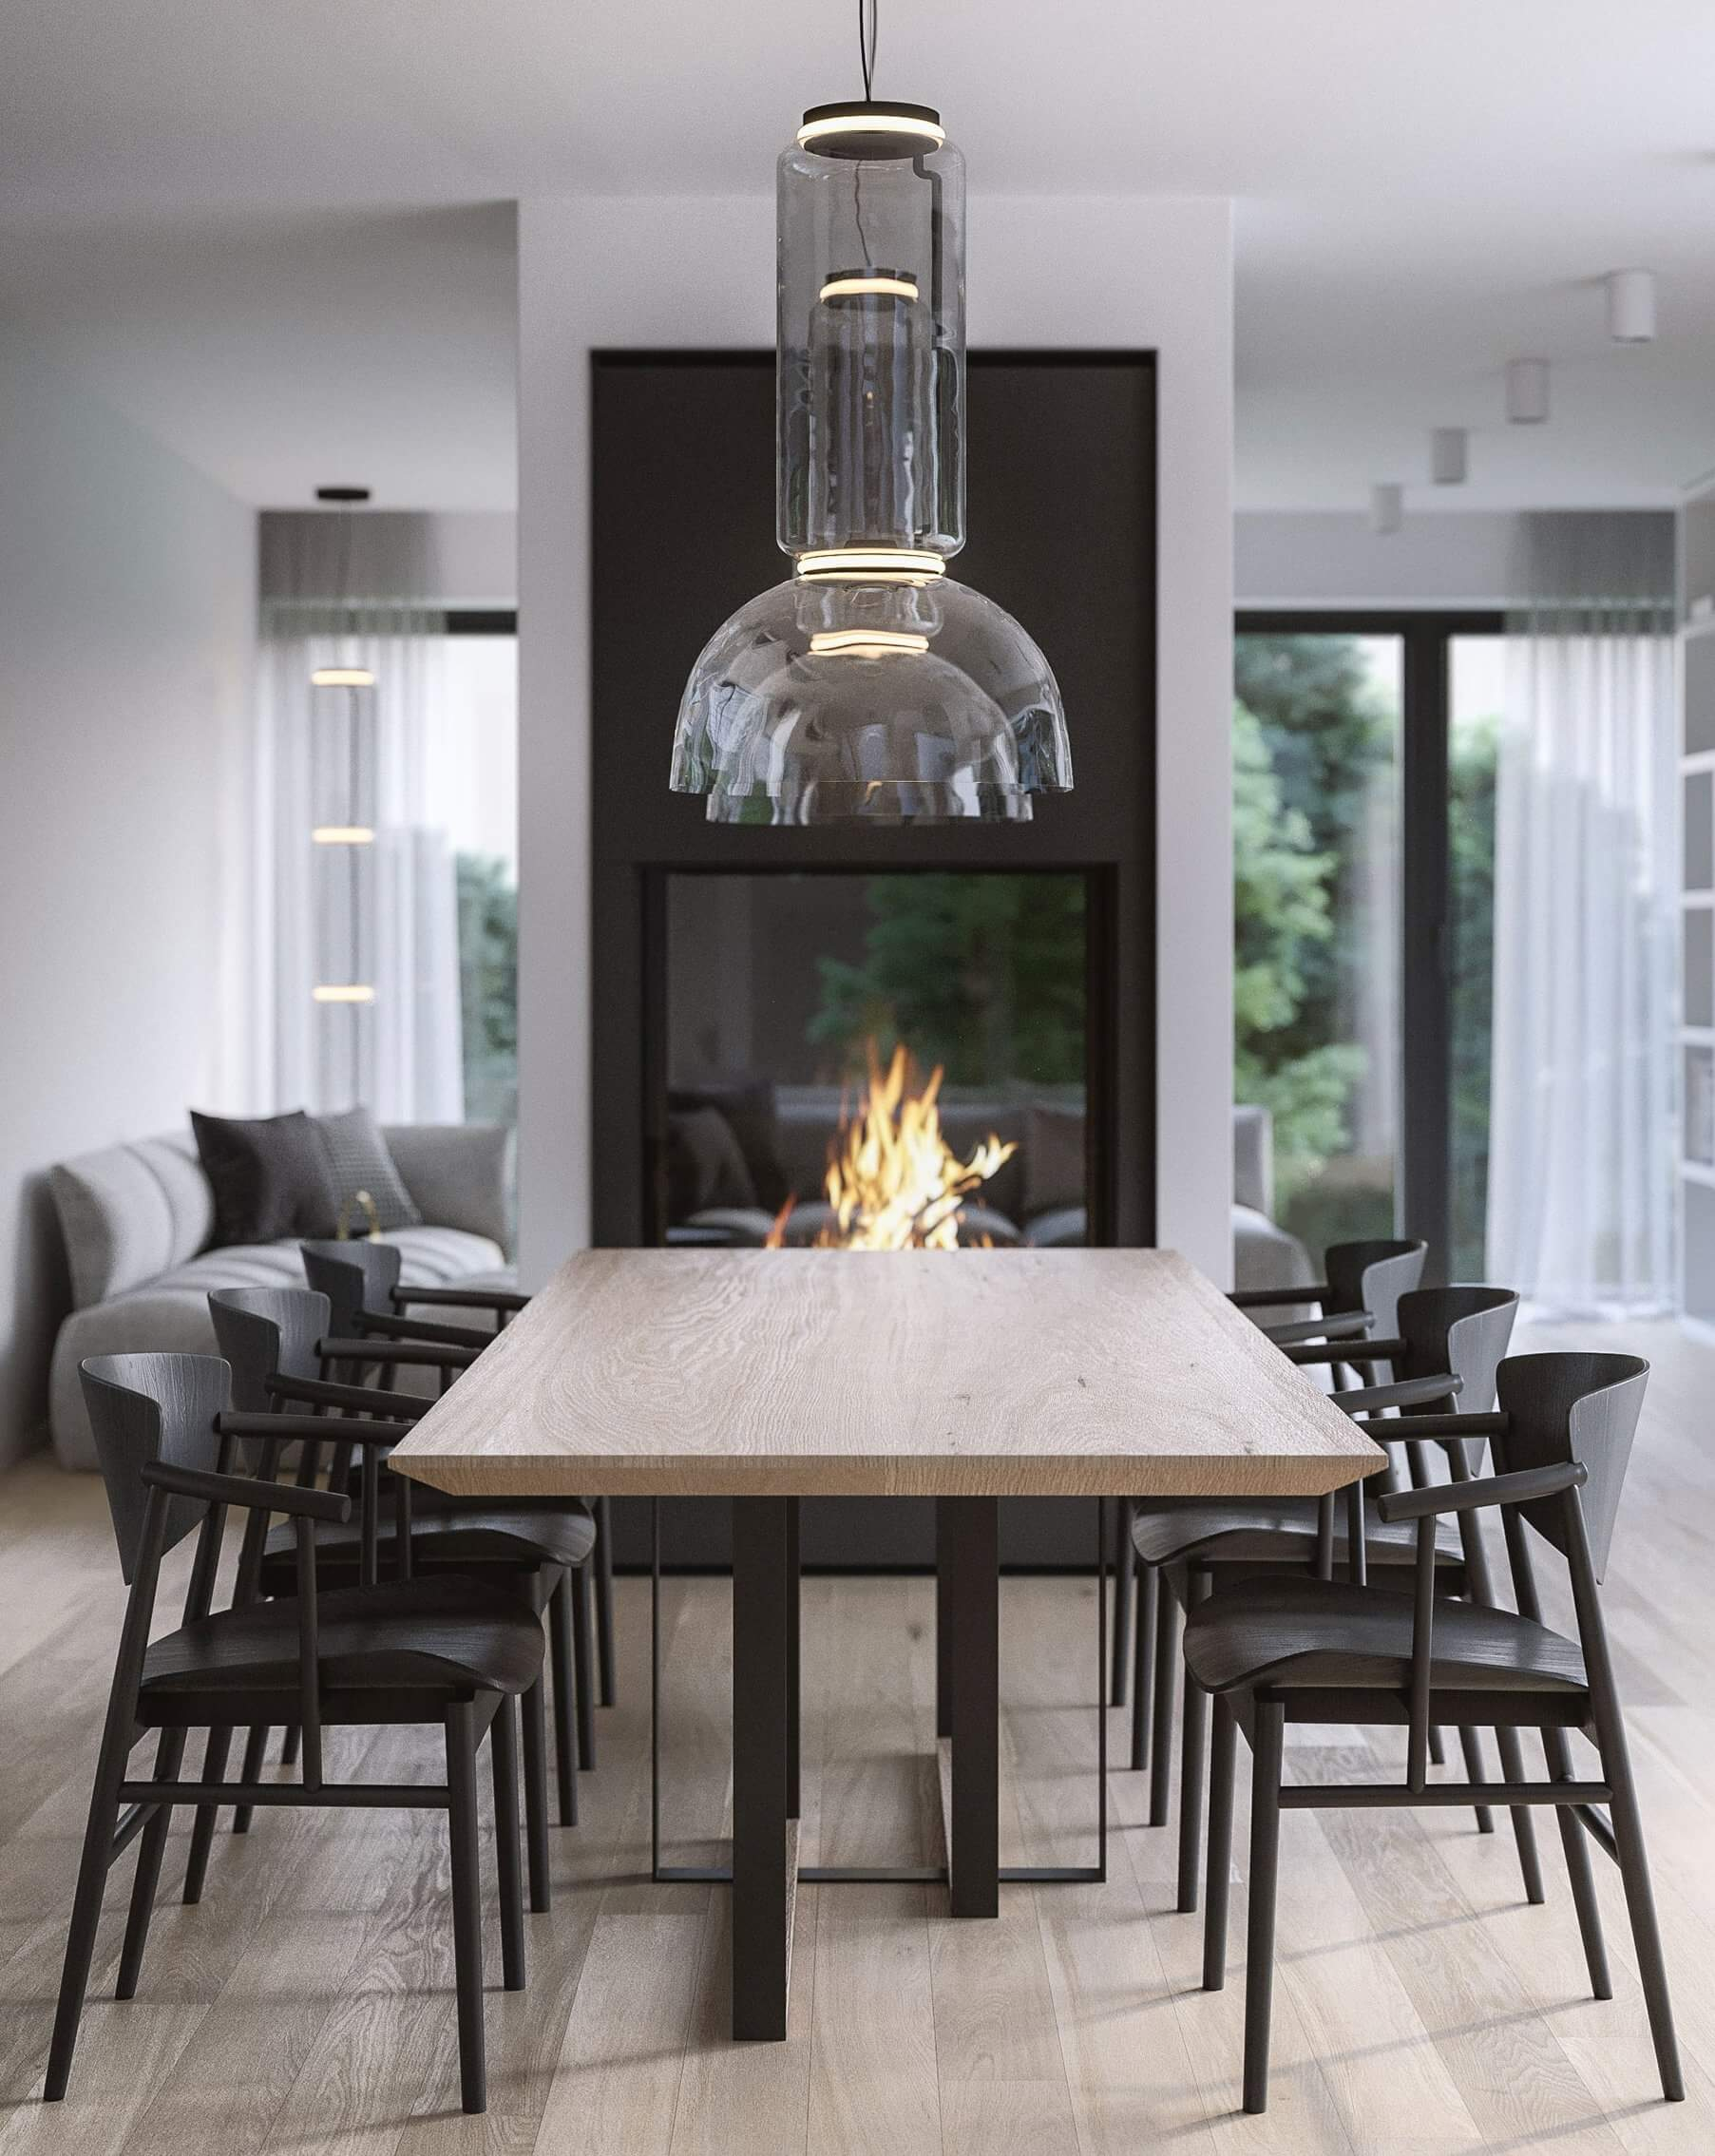 Suprematic Simplicity Apartment dining room fire place - cgi visualization